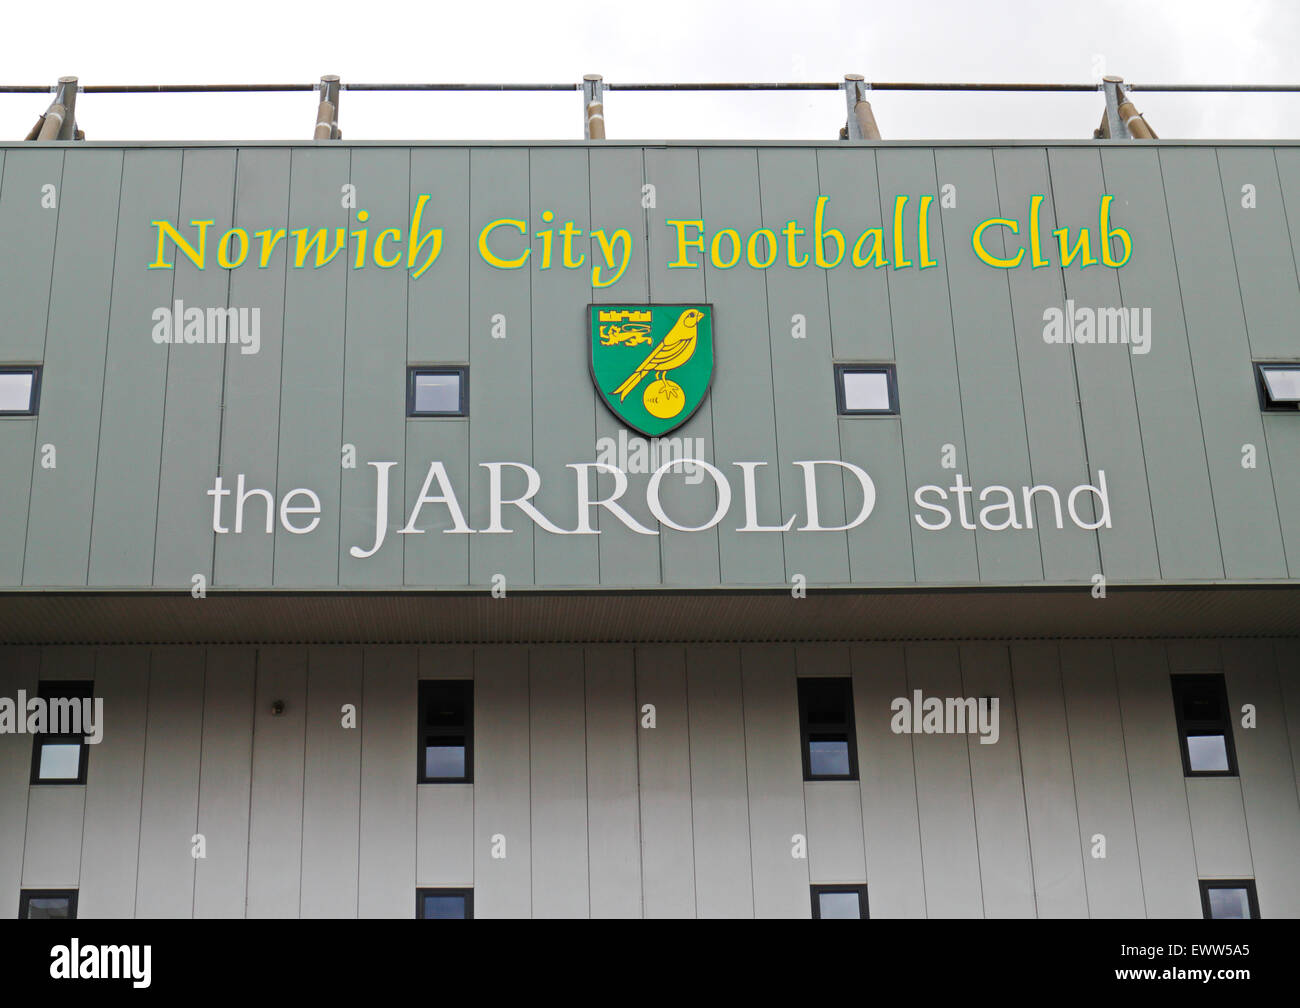 Sign of The Jarrold stand and club badge at the Carrow Road ground of Norwich City Football Club, Norfolk, England, - Stock Image